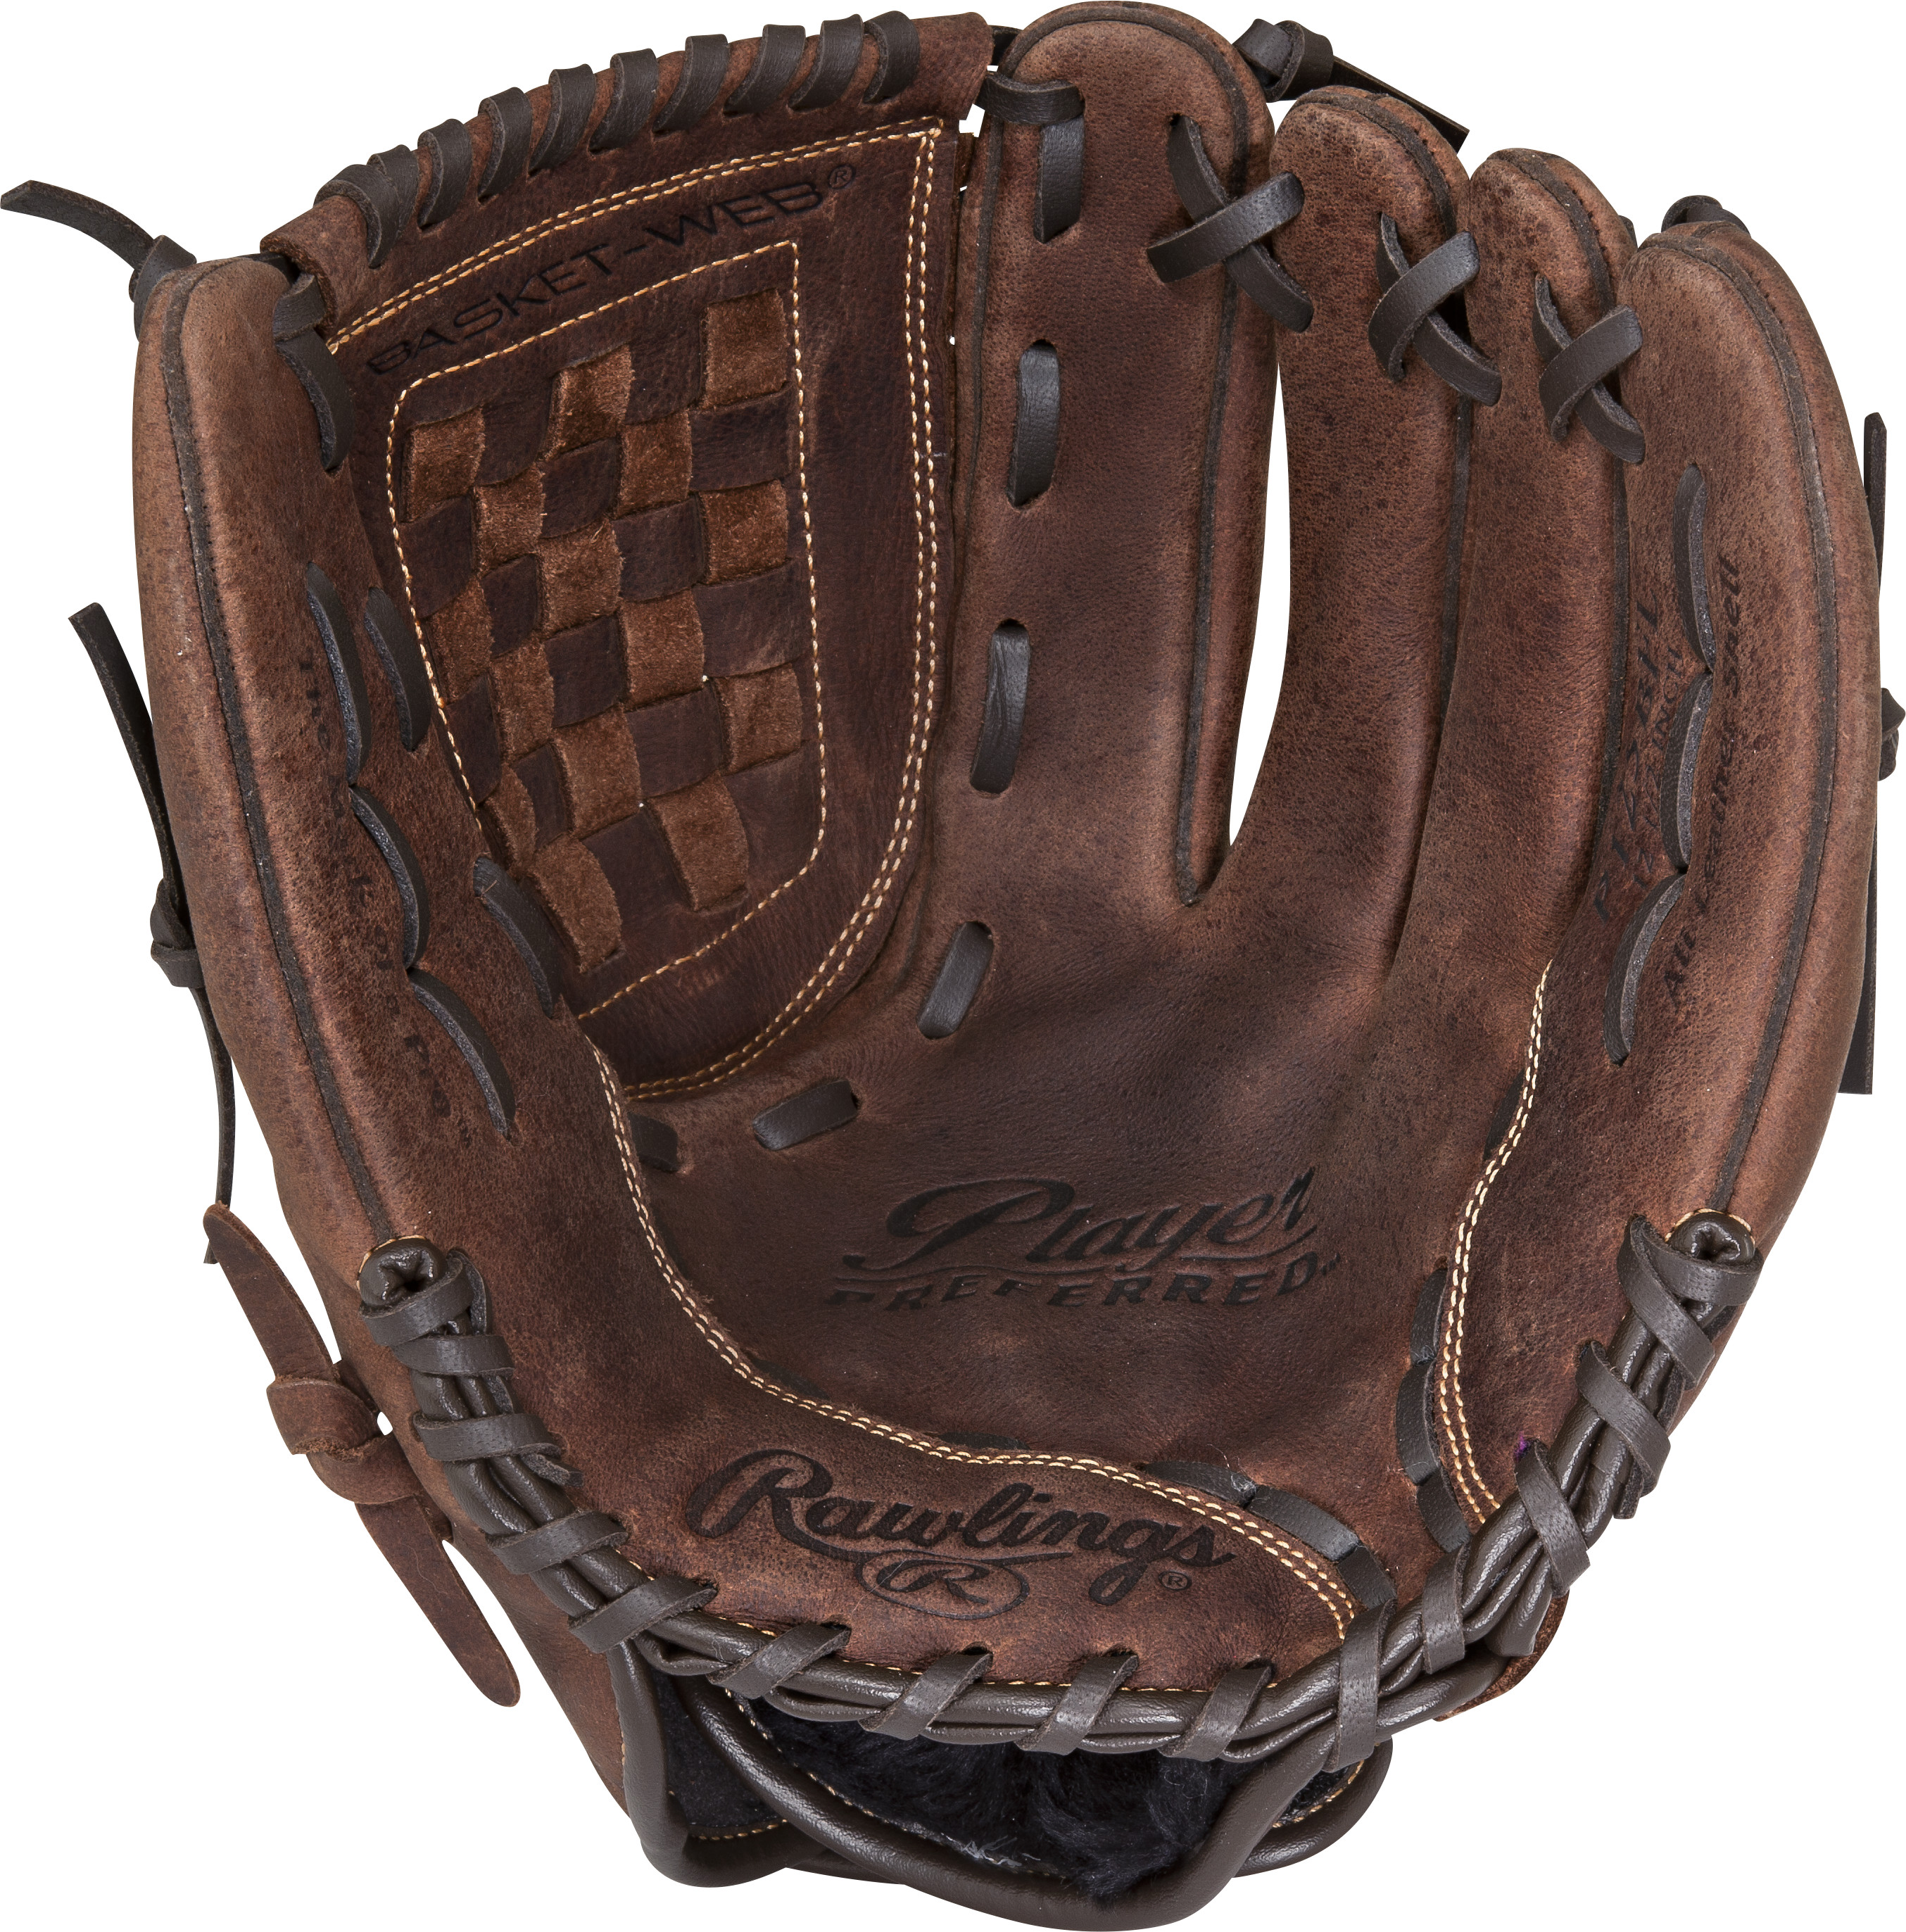 http://www.bestbatdeals.com/images/gloves/rawlings/P125BFL_palm.jpg